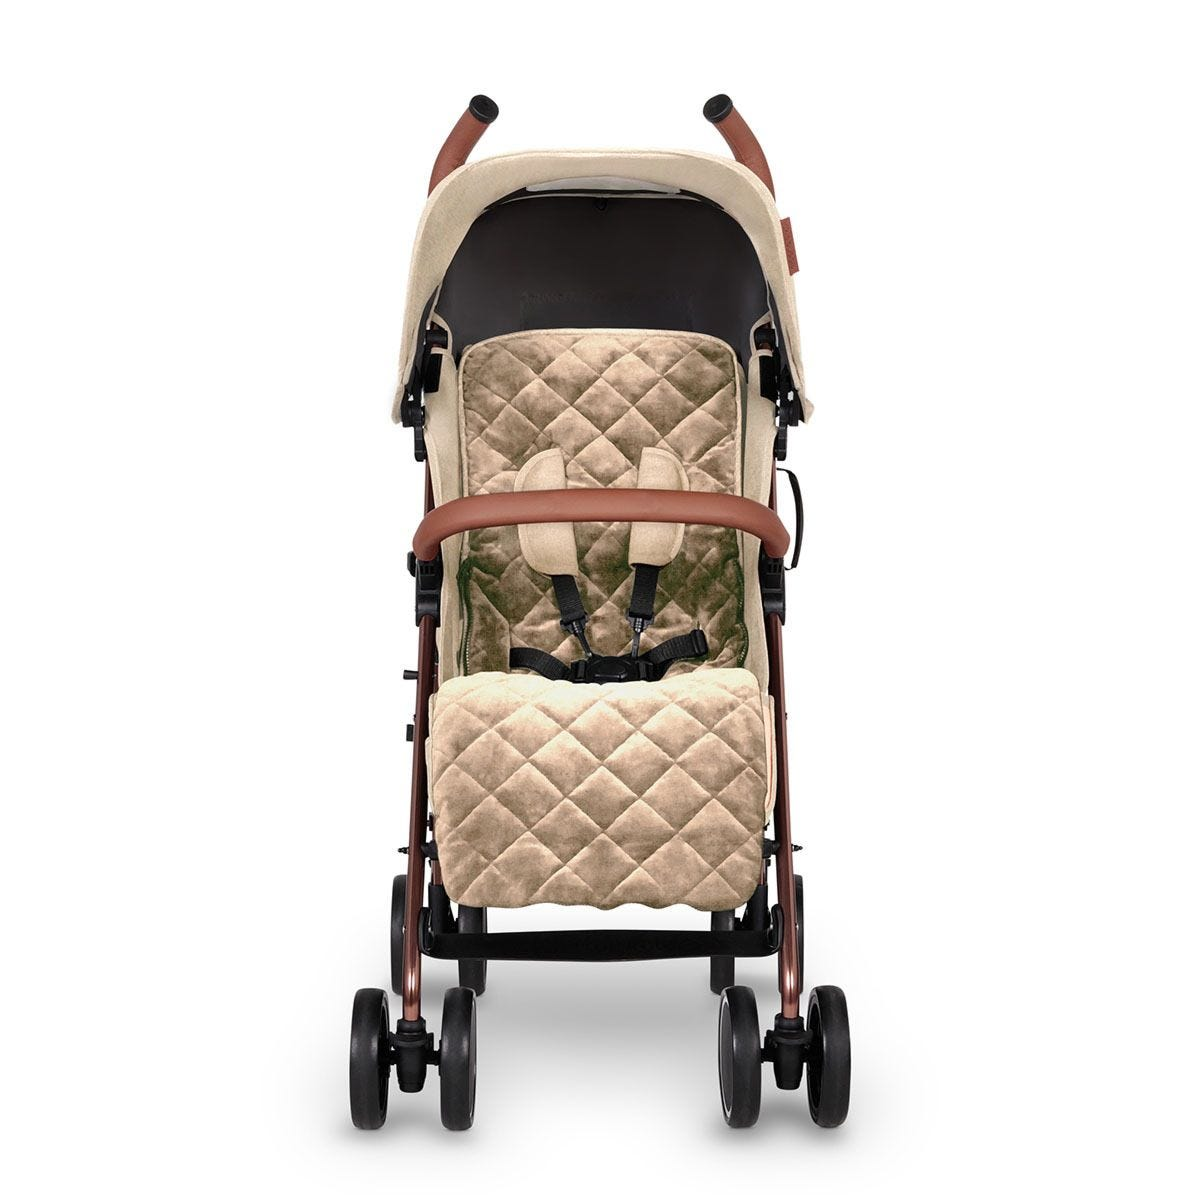 Ickle Bubba Discovery Prime Stroller - Cream on Rose Gold